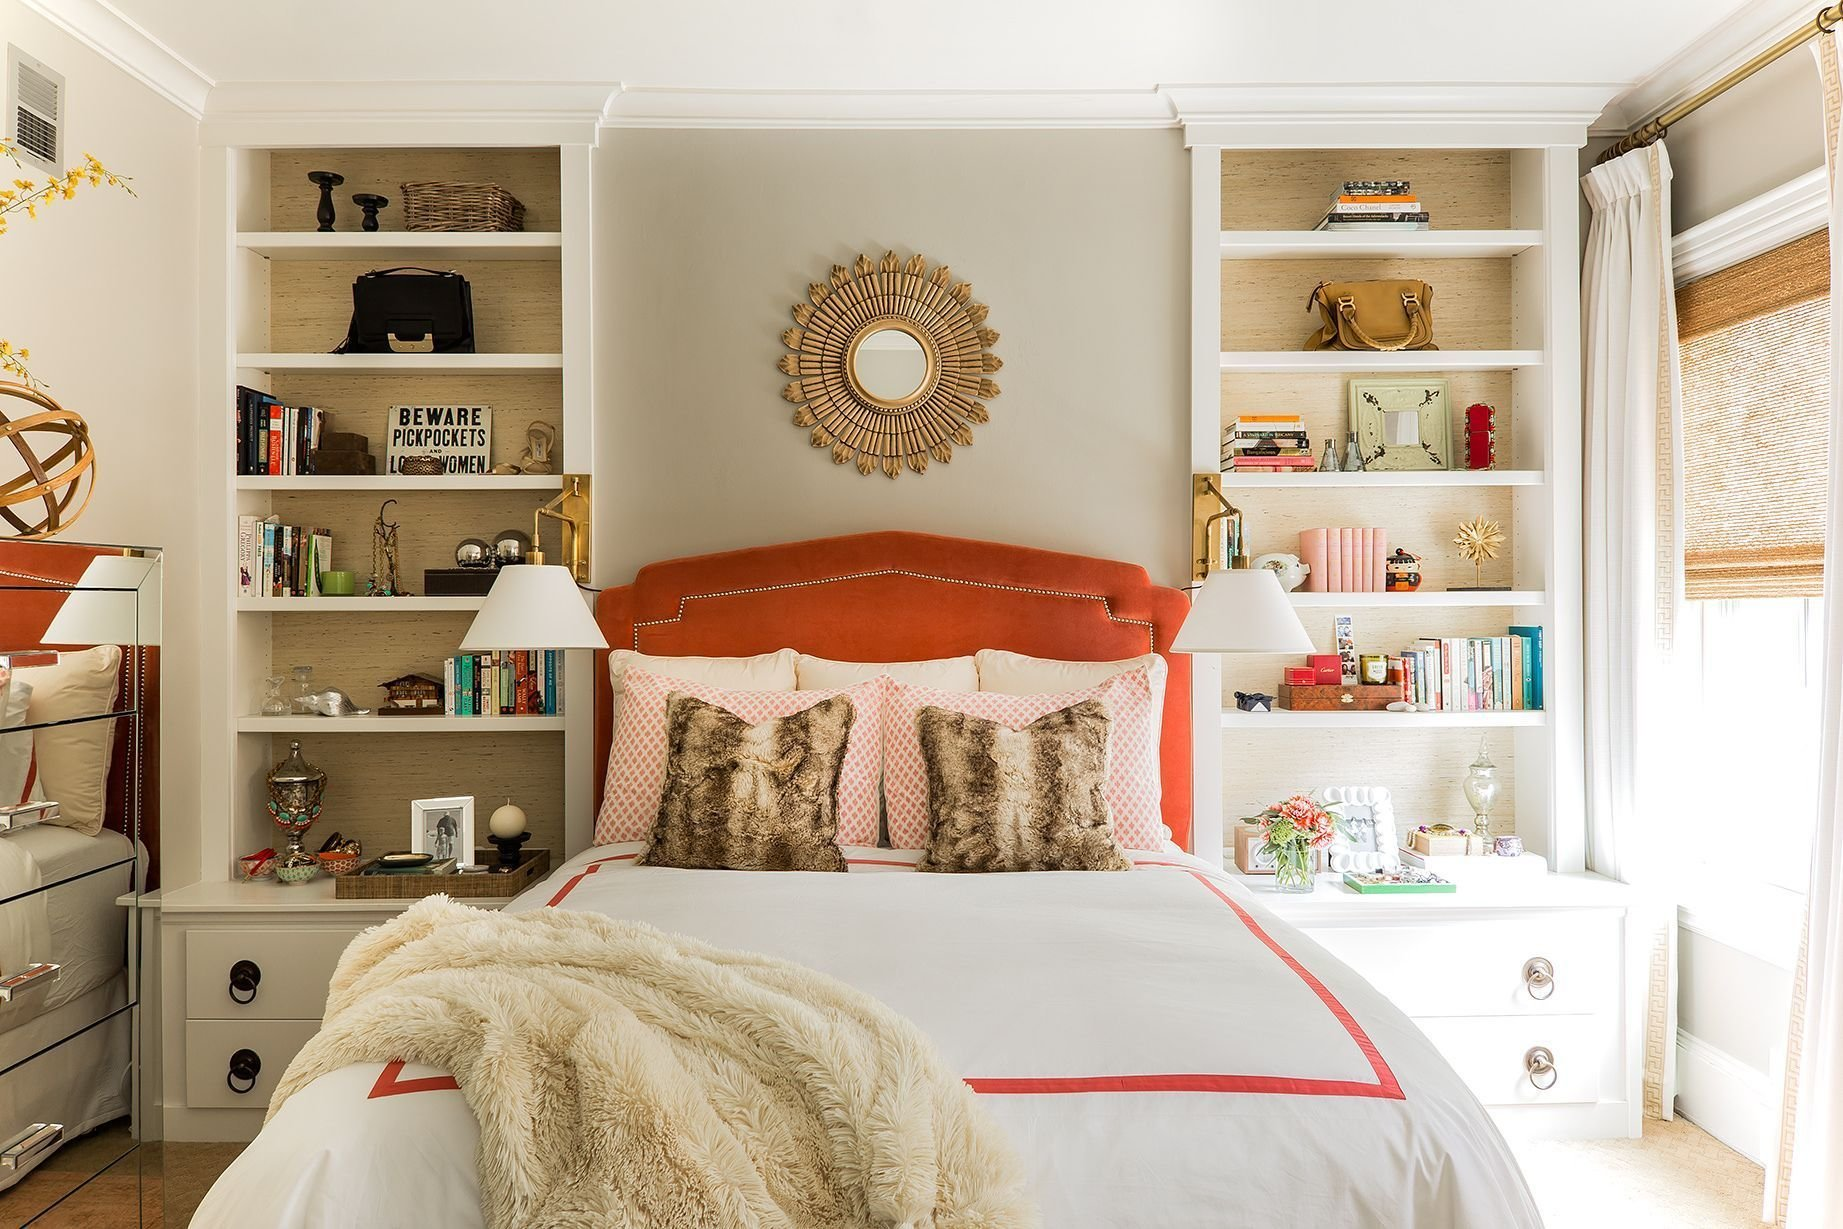 Best 17 Small Bedroom Design Ideas How To Decorate A Small Bedroom With Pictures